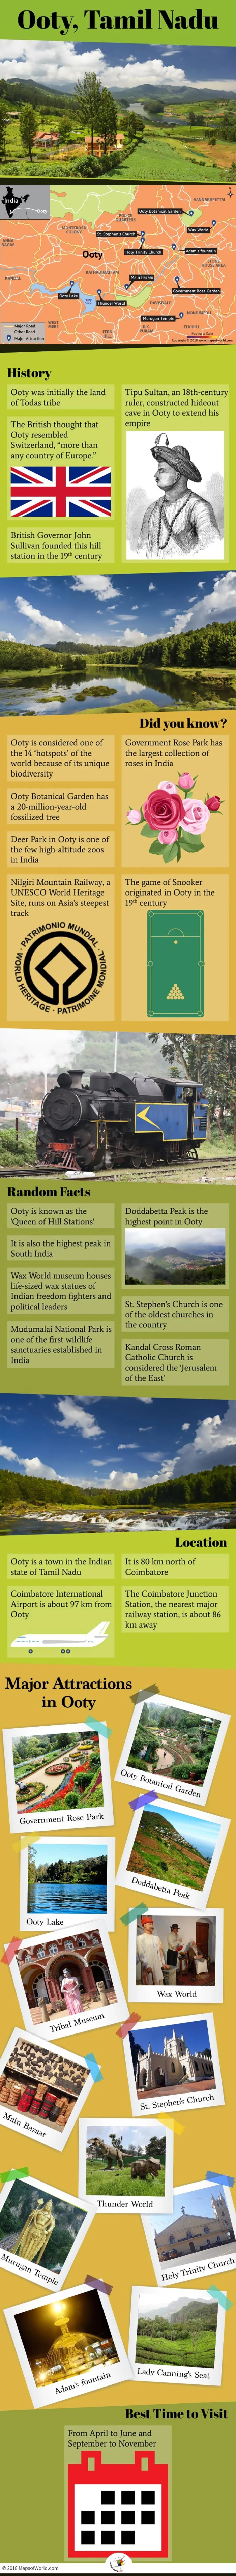 Infographic Depicting Ooty Tourist Attractions